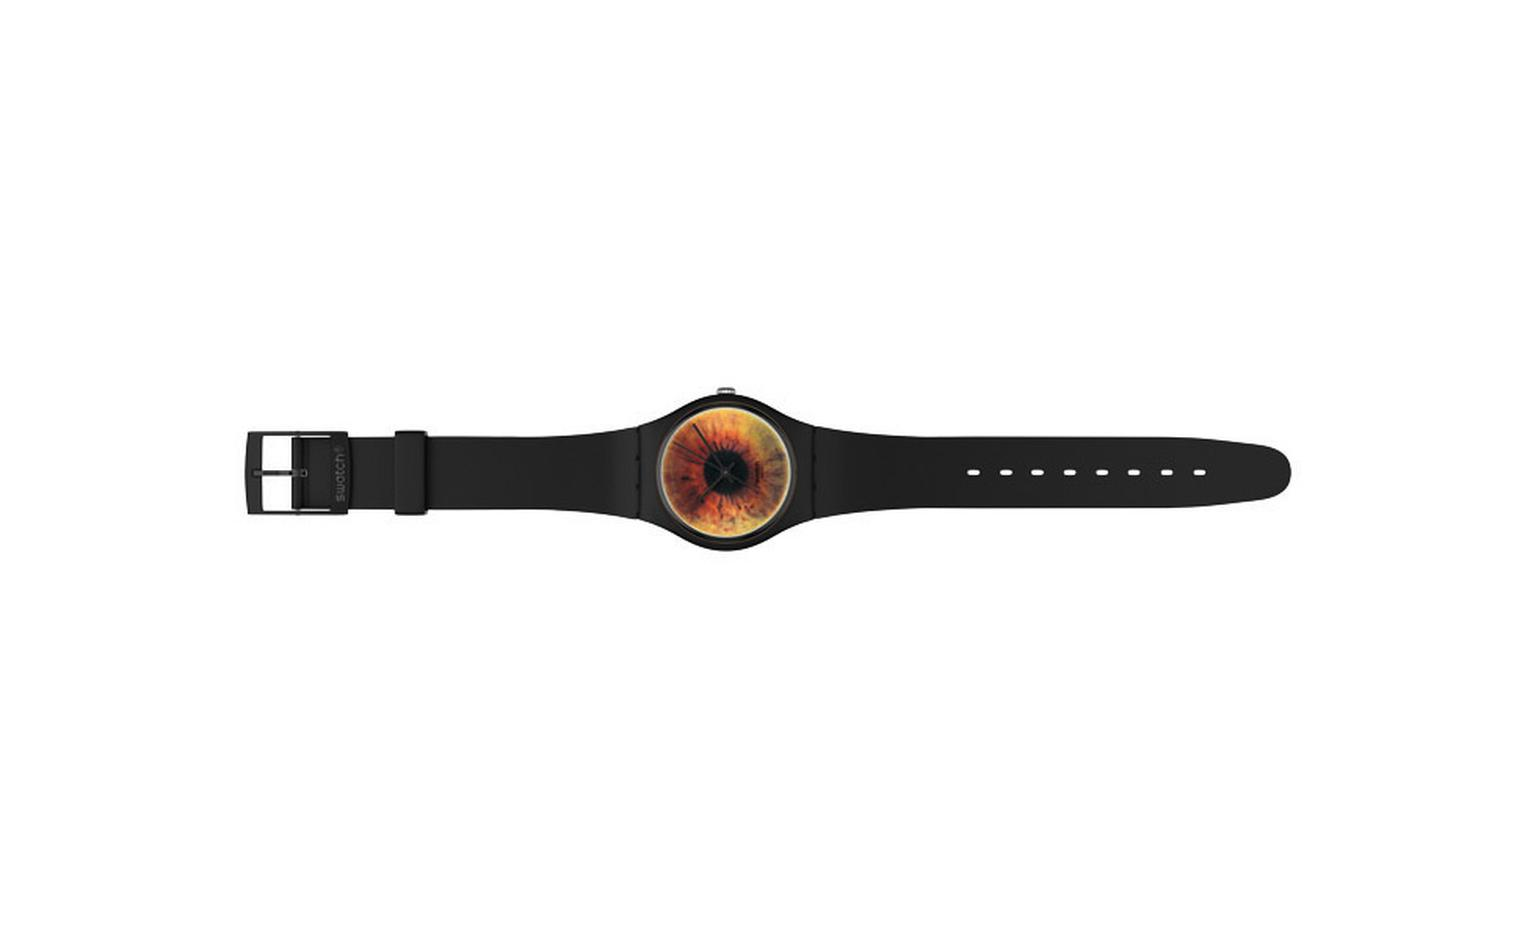 The Swatch Brownscape Rankin watch that sells for £38